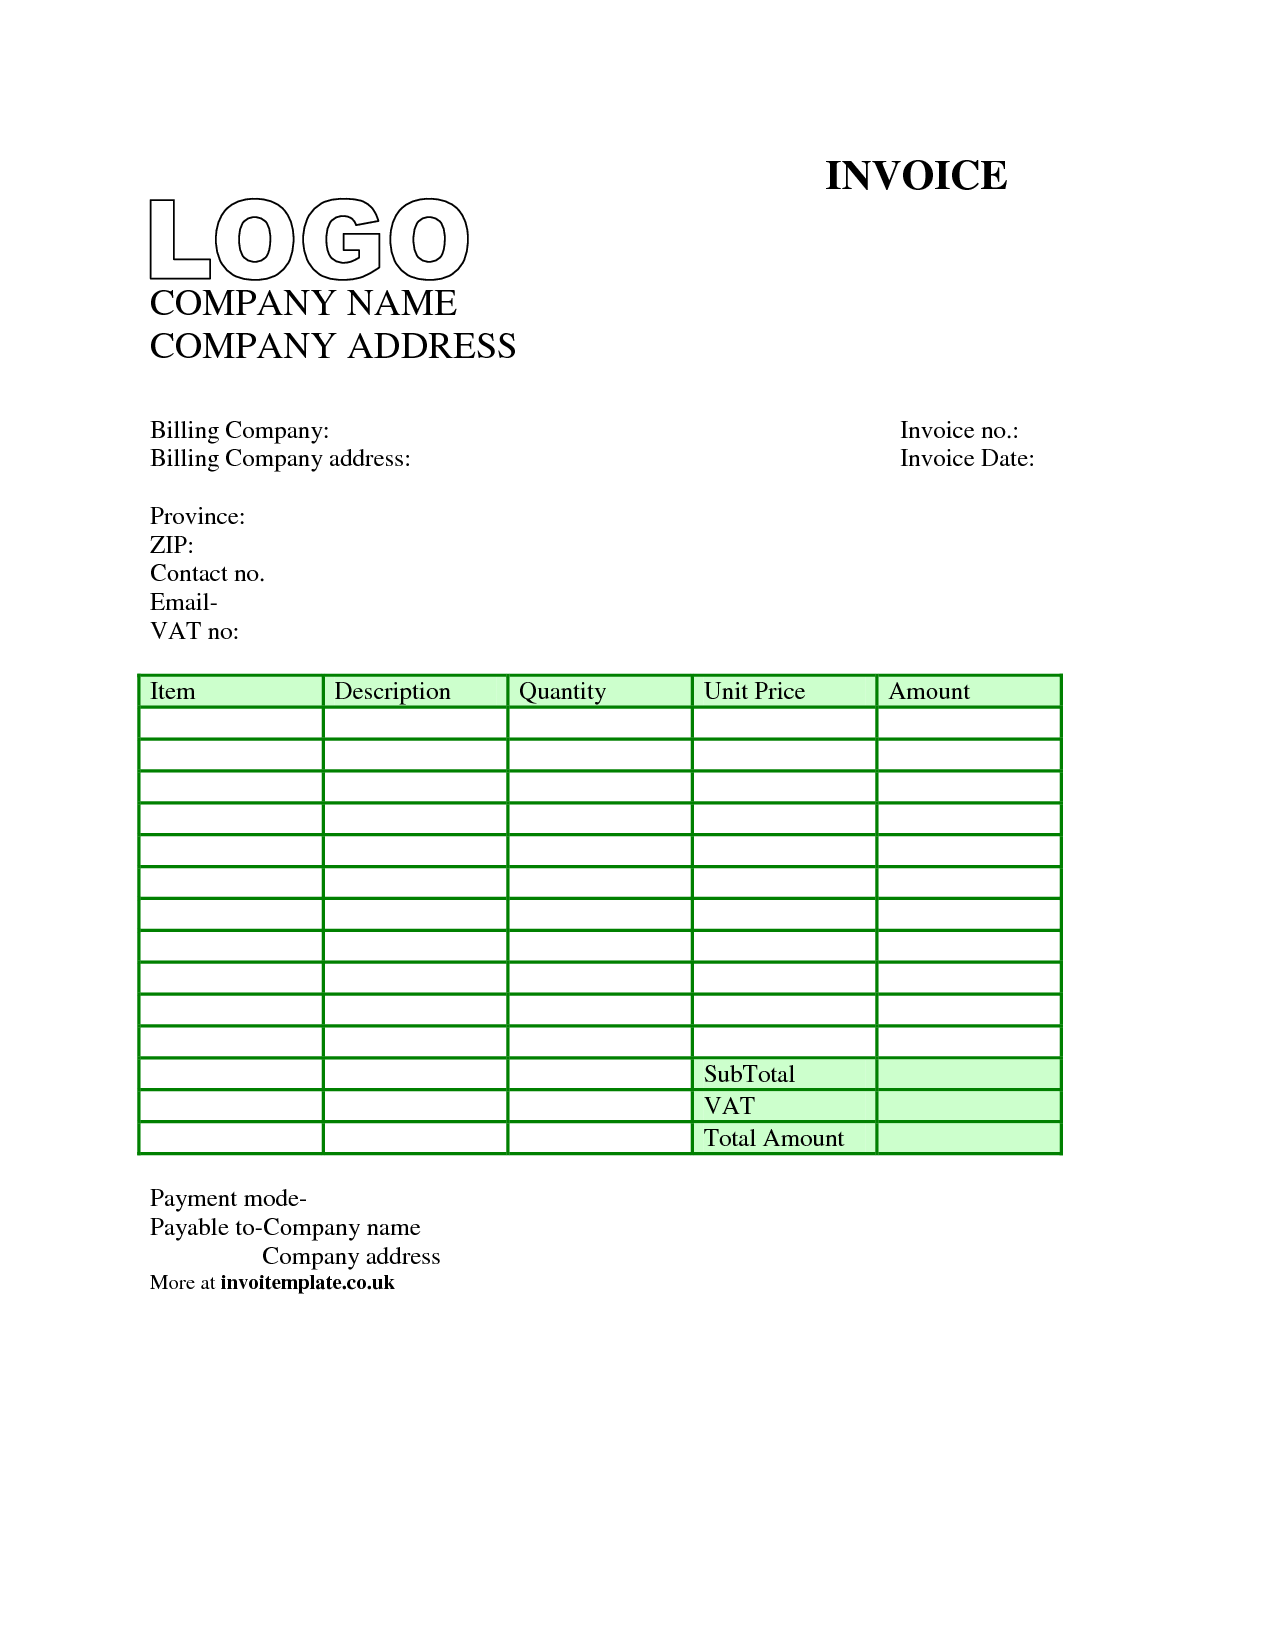 Free Online Invoice Creator Template and Free Online Invoice Templates Resume Templates